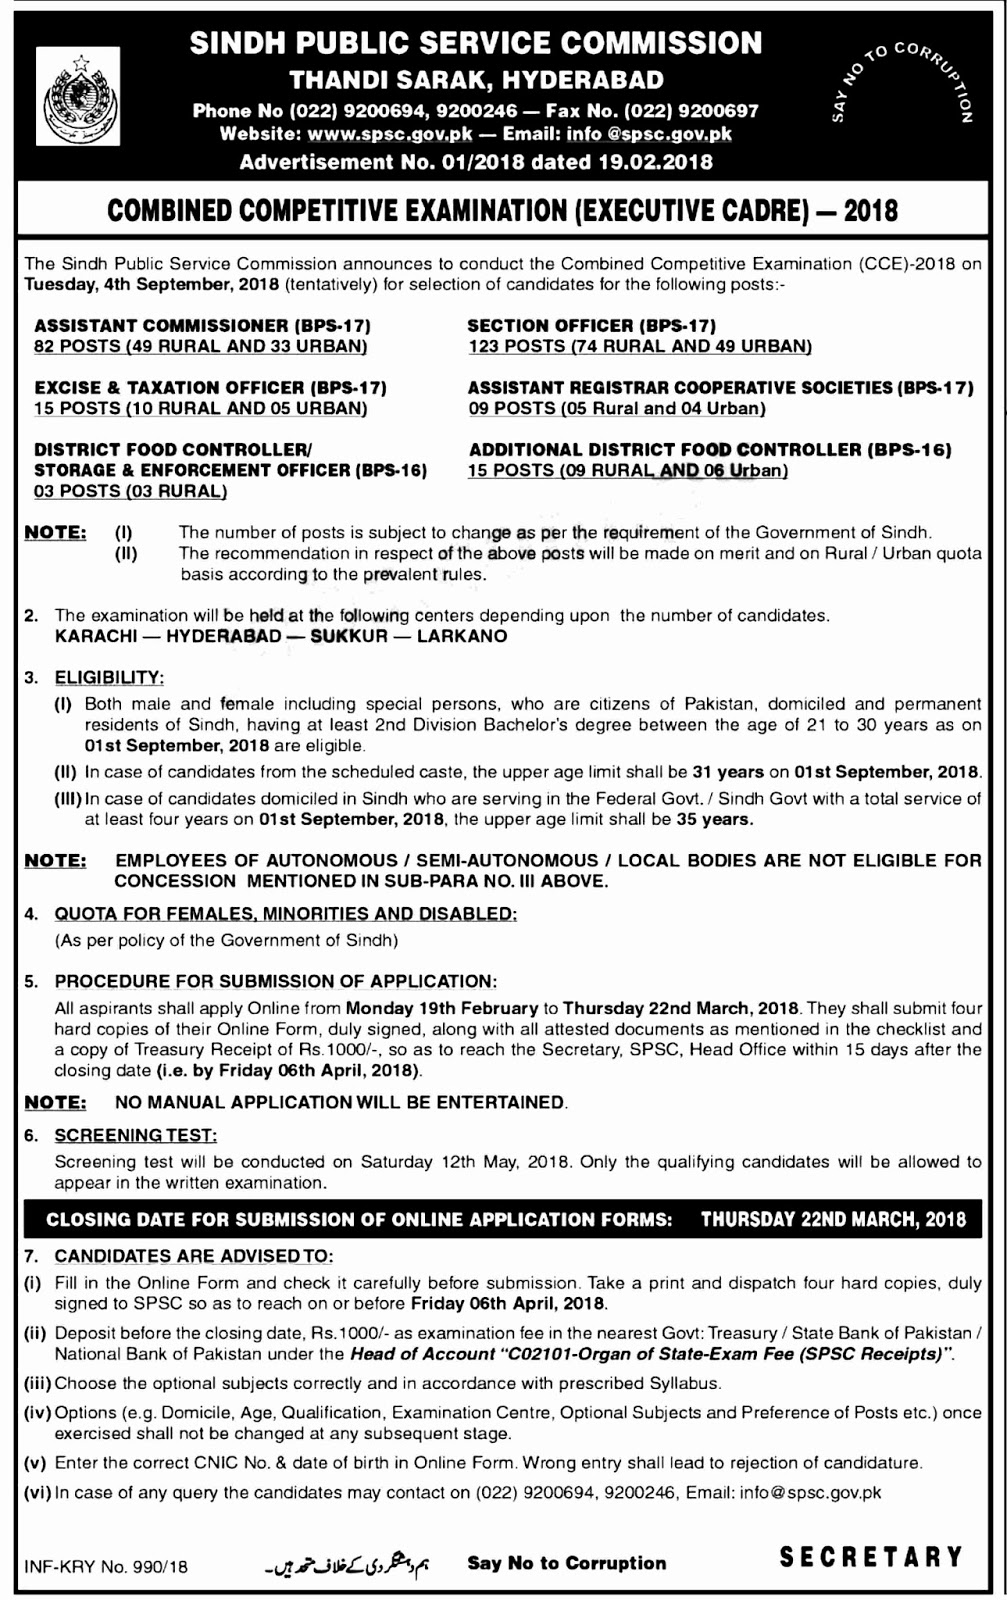 Latest Jobs 2018 in SPSC Advertisement No 01/2018,Sindh Public Service Commission